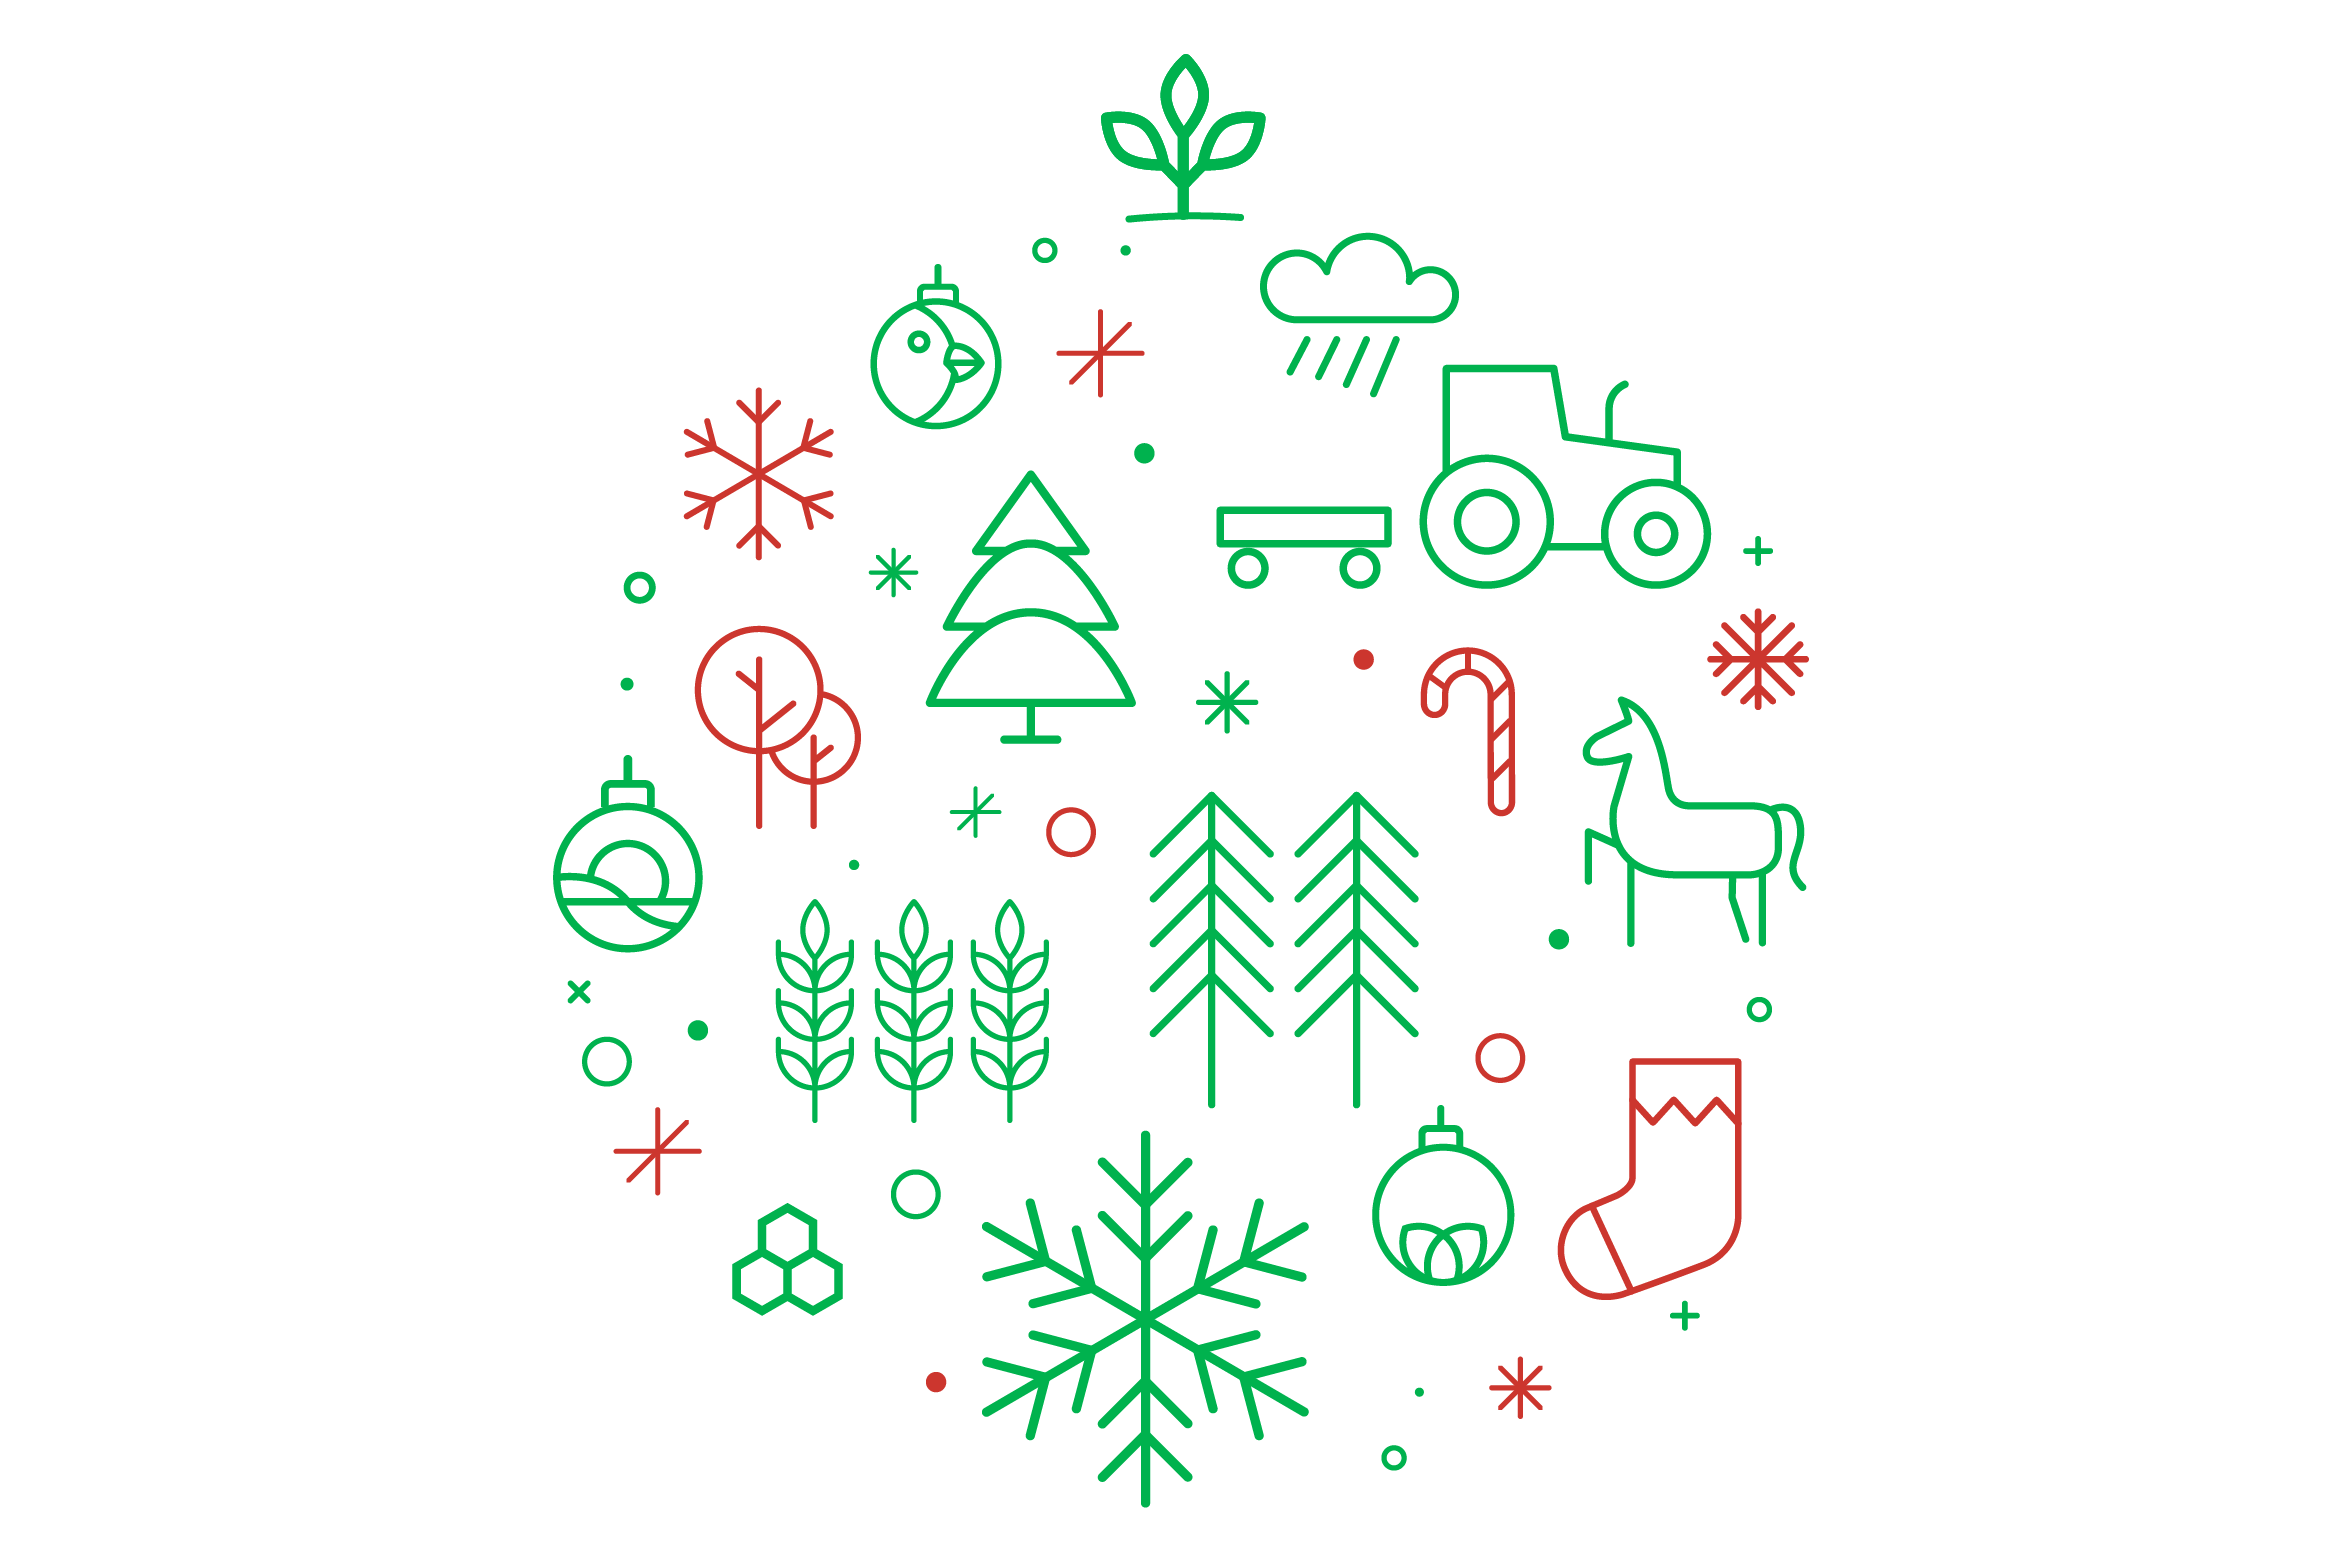 Christmas-inspired graphic